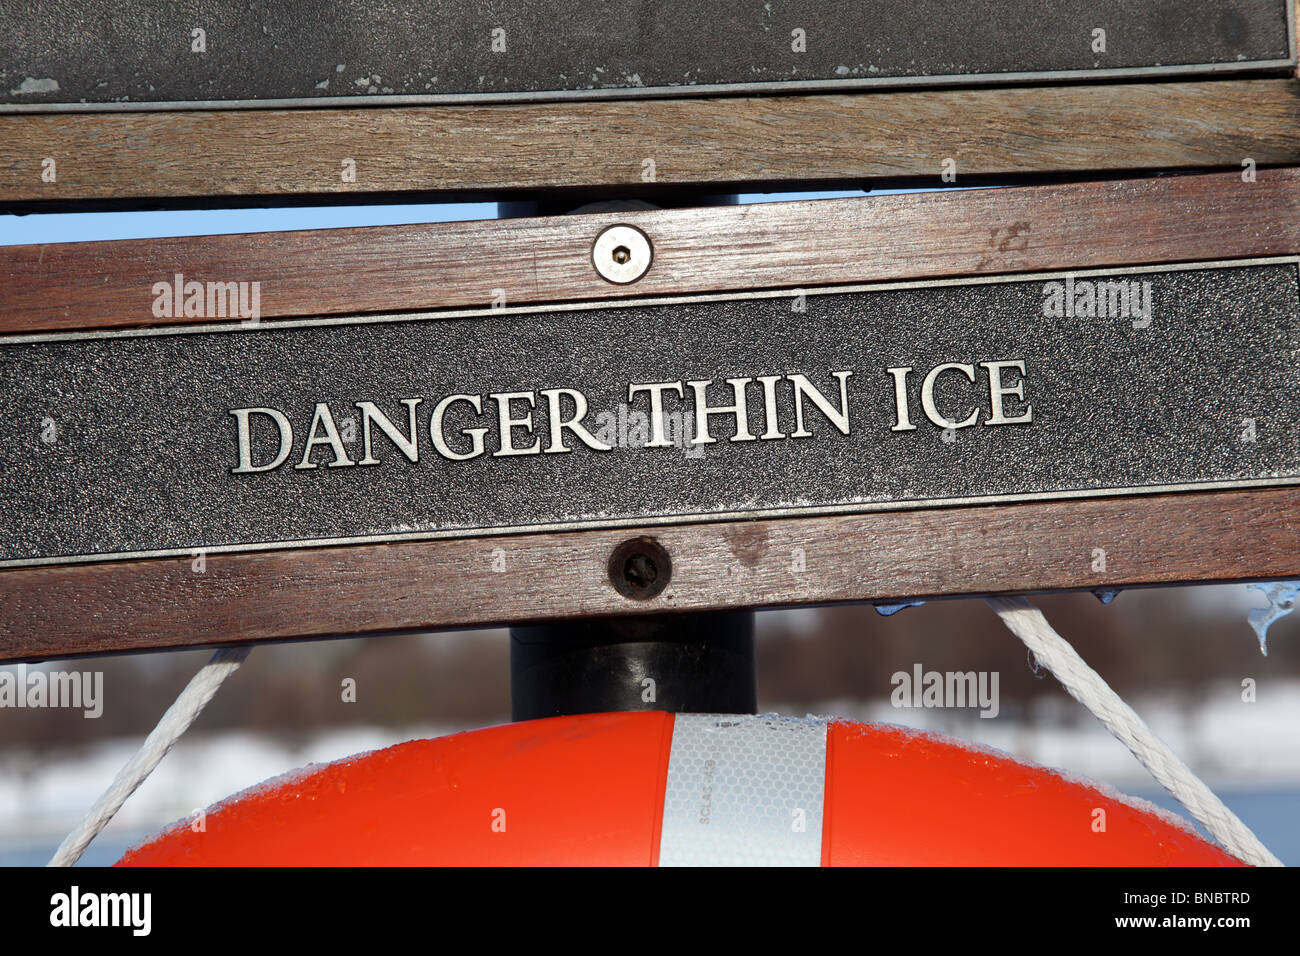 Danger Thin Ice sign in Hyde Park, Westminster, London, W2. - Stock Image